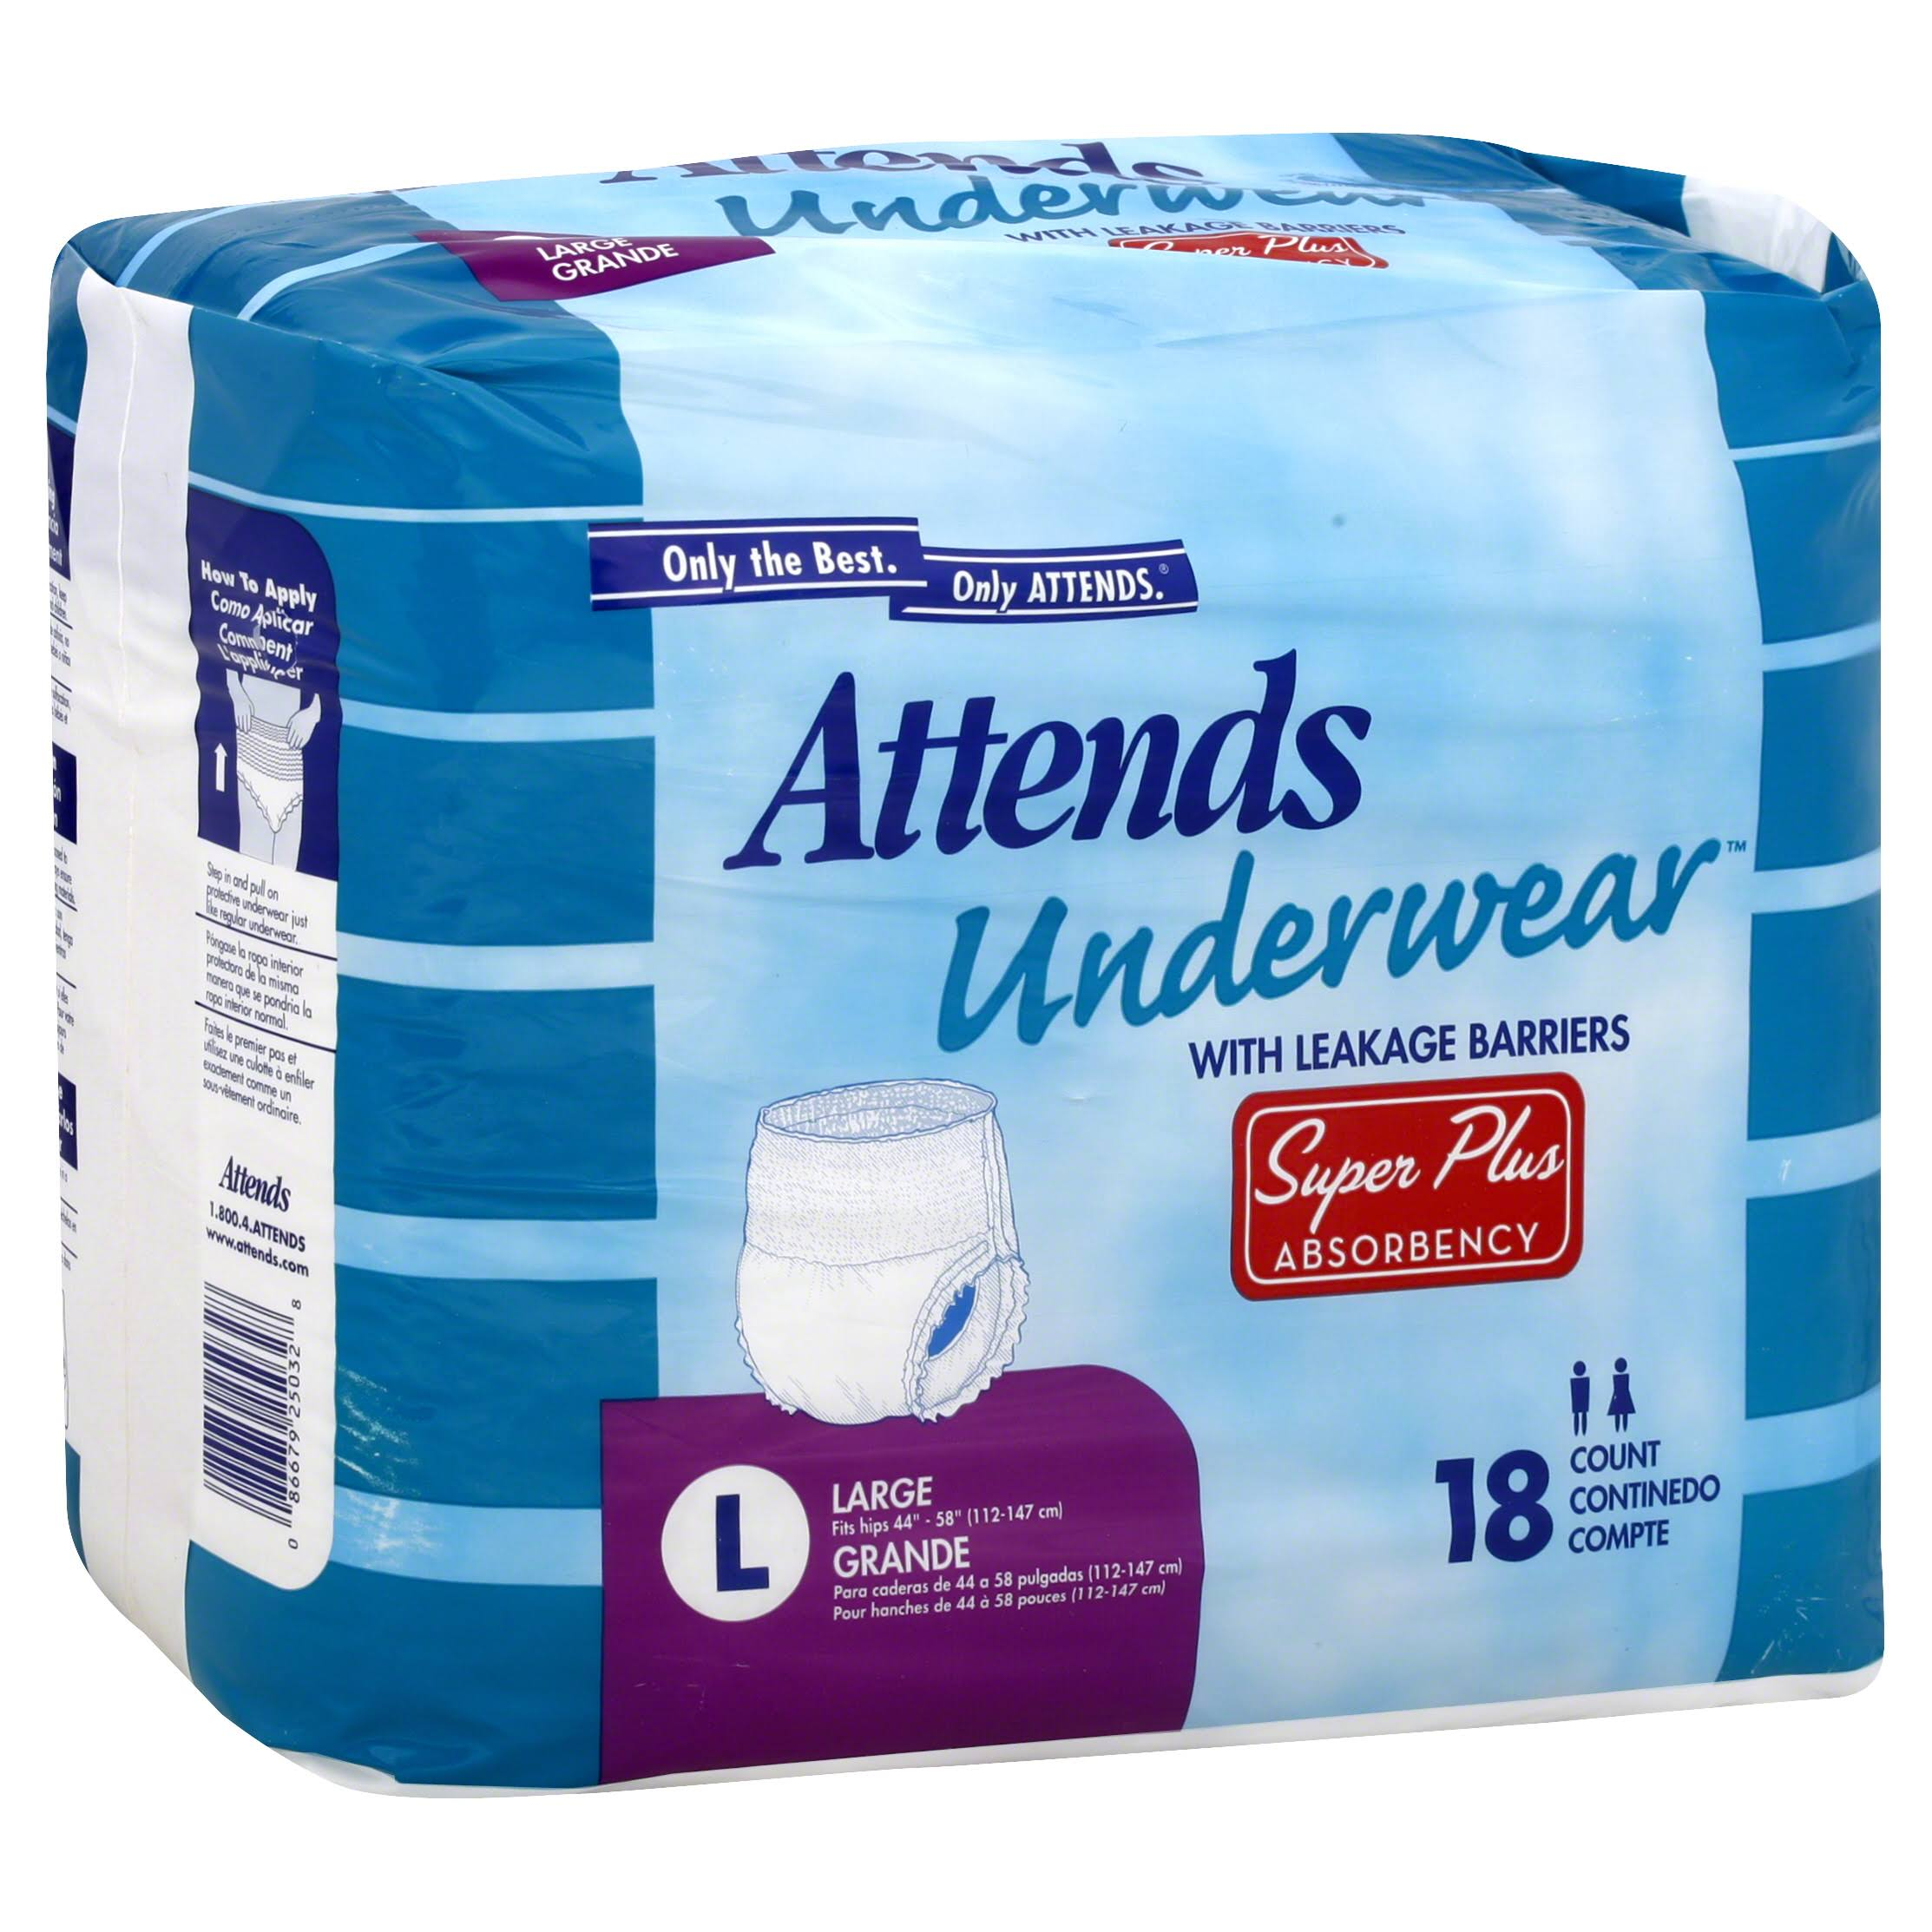 Attends Super Plus Absorbency Protective Underwear - Large, 18ct